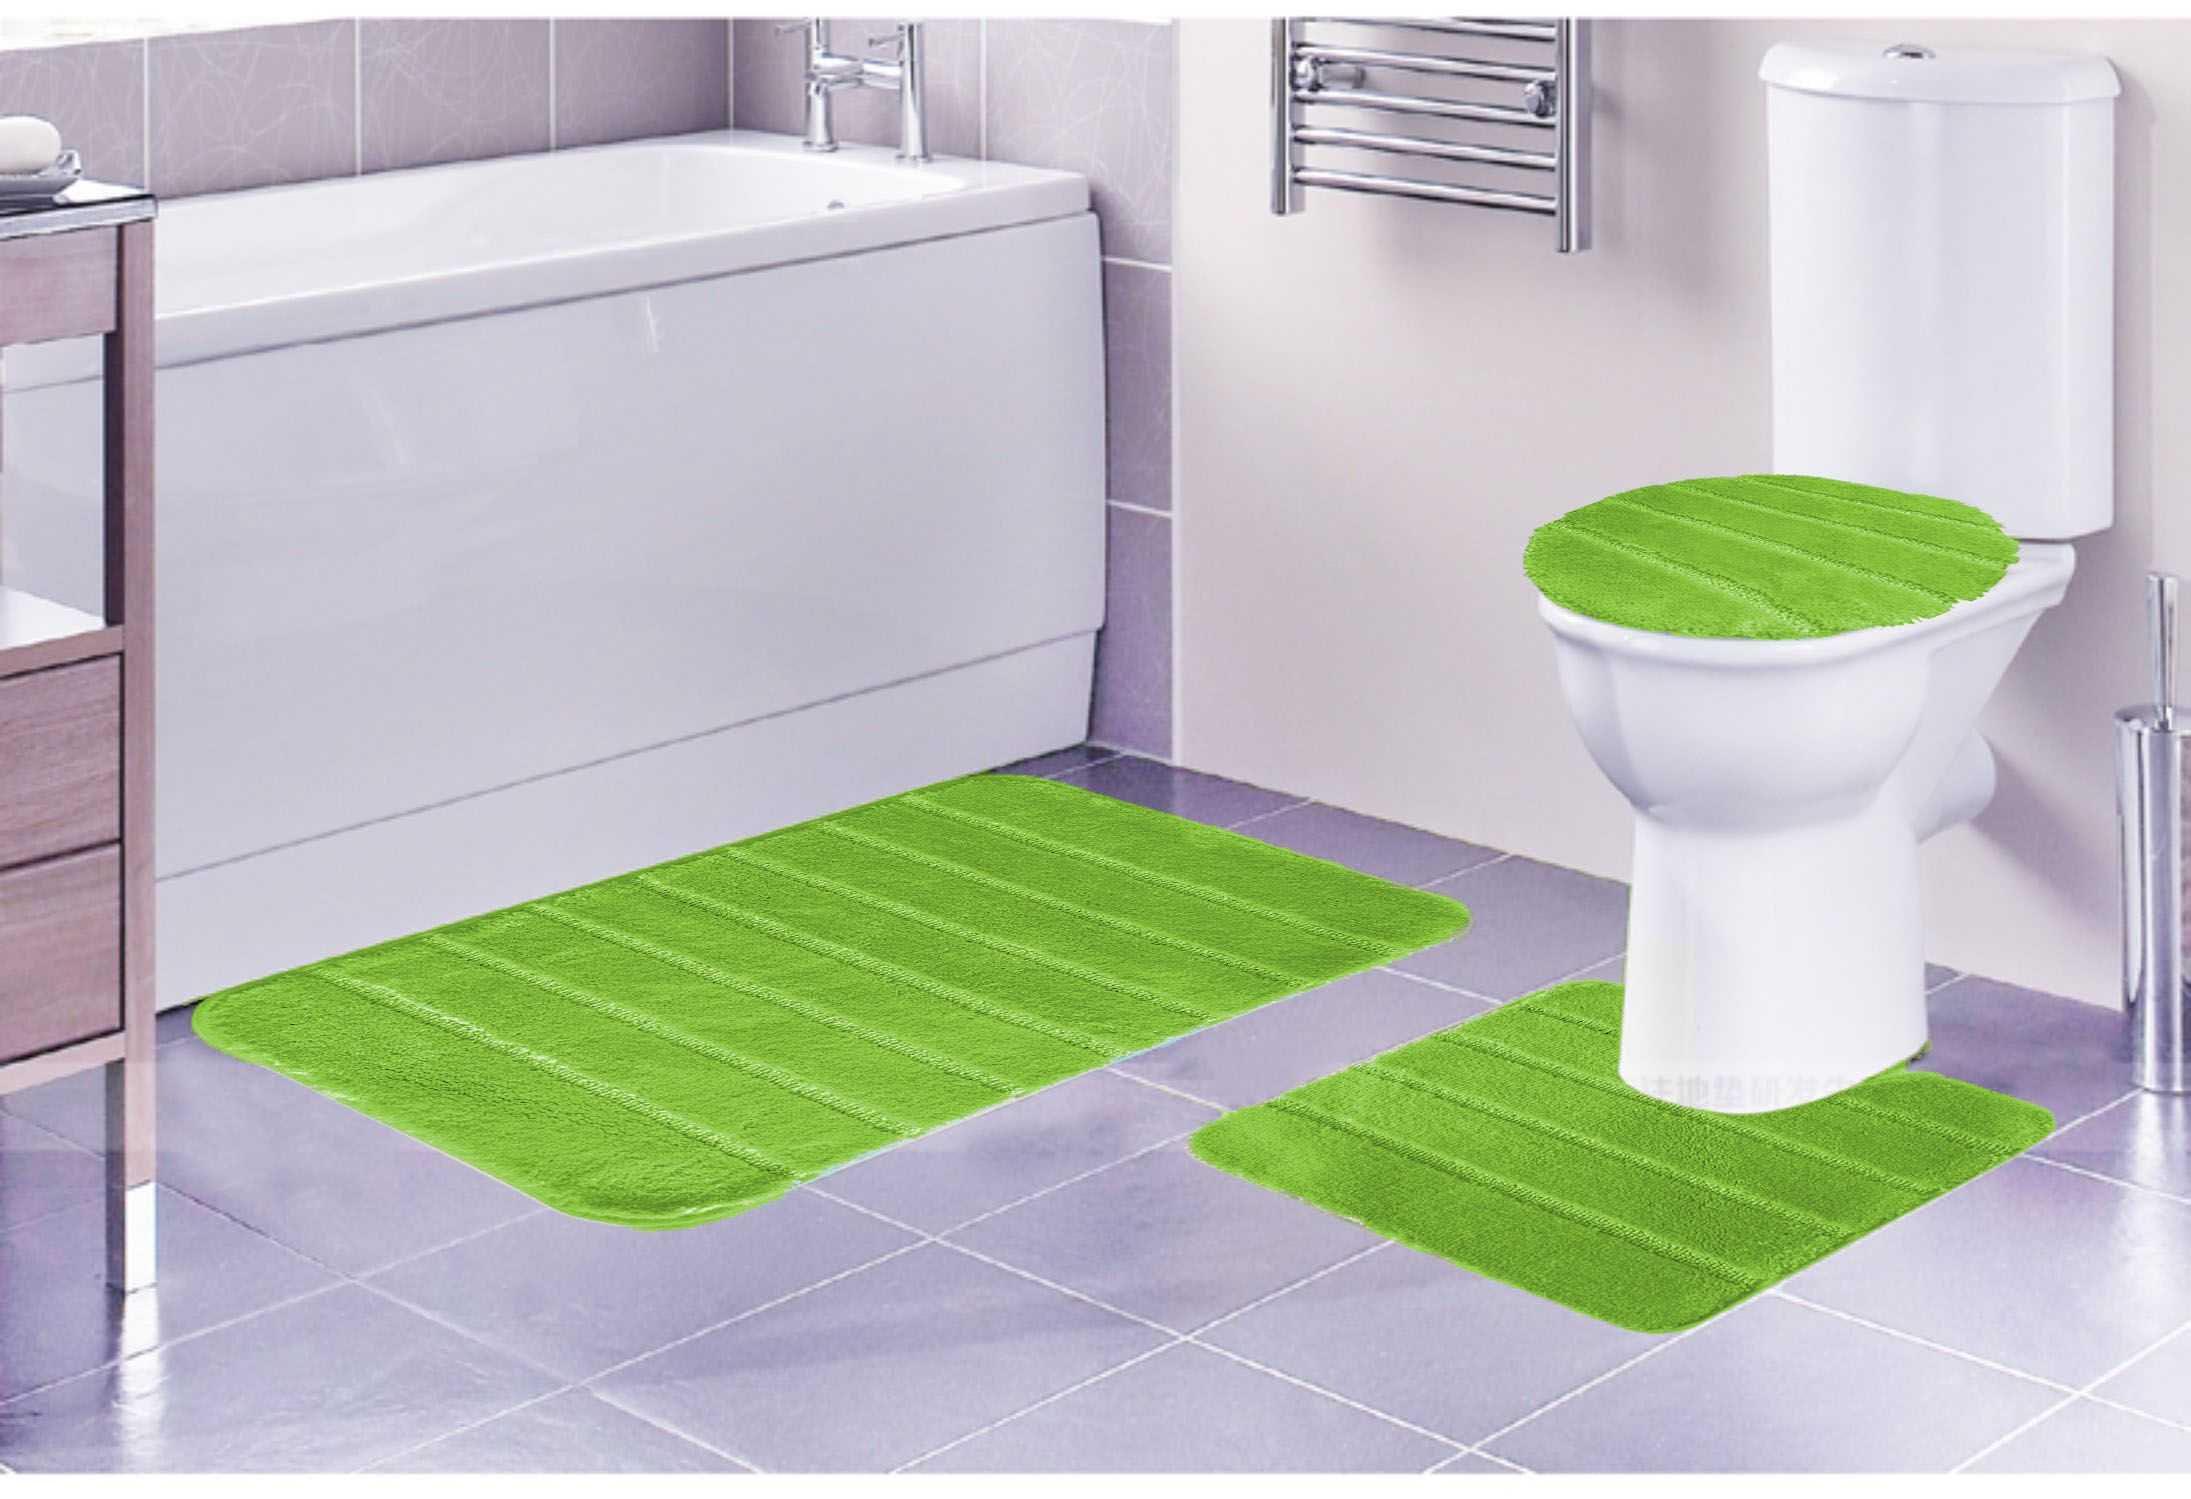 louise ribbed 3 piece bathroom rug set bath rug contour rug lid cover - 3 Piece Bathroom Rug Sets